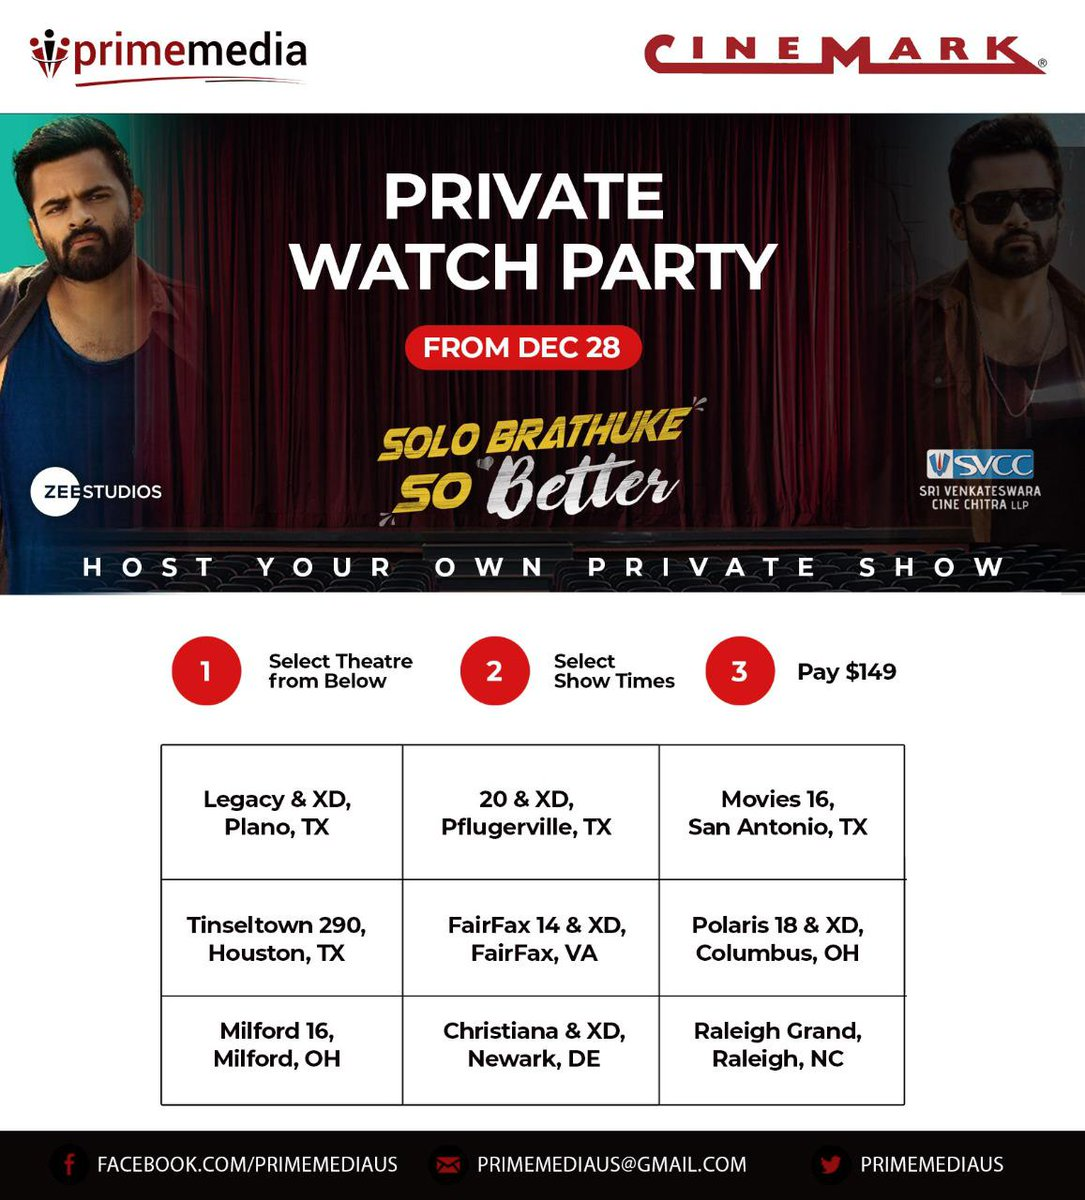 Namaskaram USA, now get a chance to host your own party of Solo Brathuke So Better at #Cinemark Theatres. Follow the steps shown in the image or contact your nearest #Cinemark Theatre or #Primemedia for more information, #SoloBrathukeSoBetter Running successfully in cinemas😃🎄✨